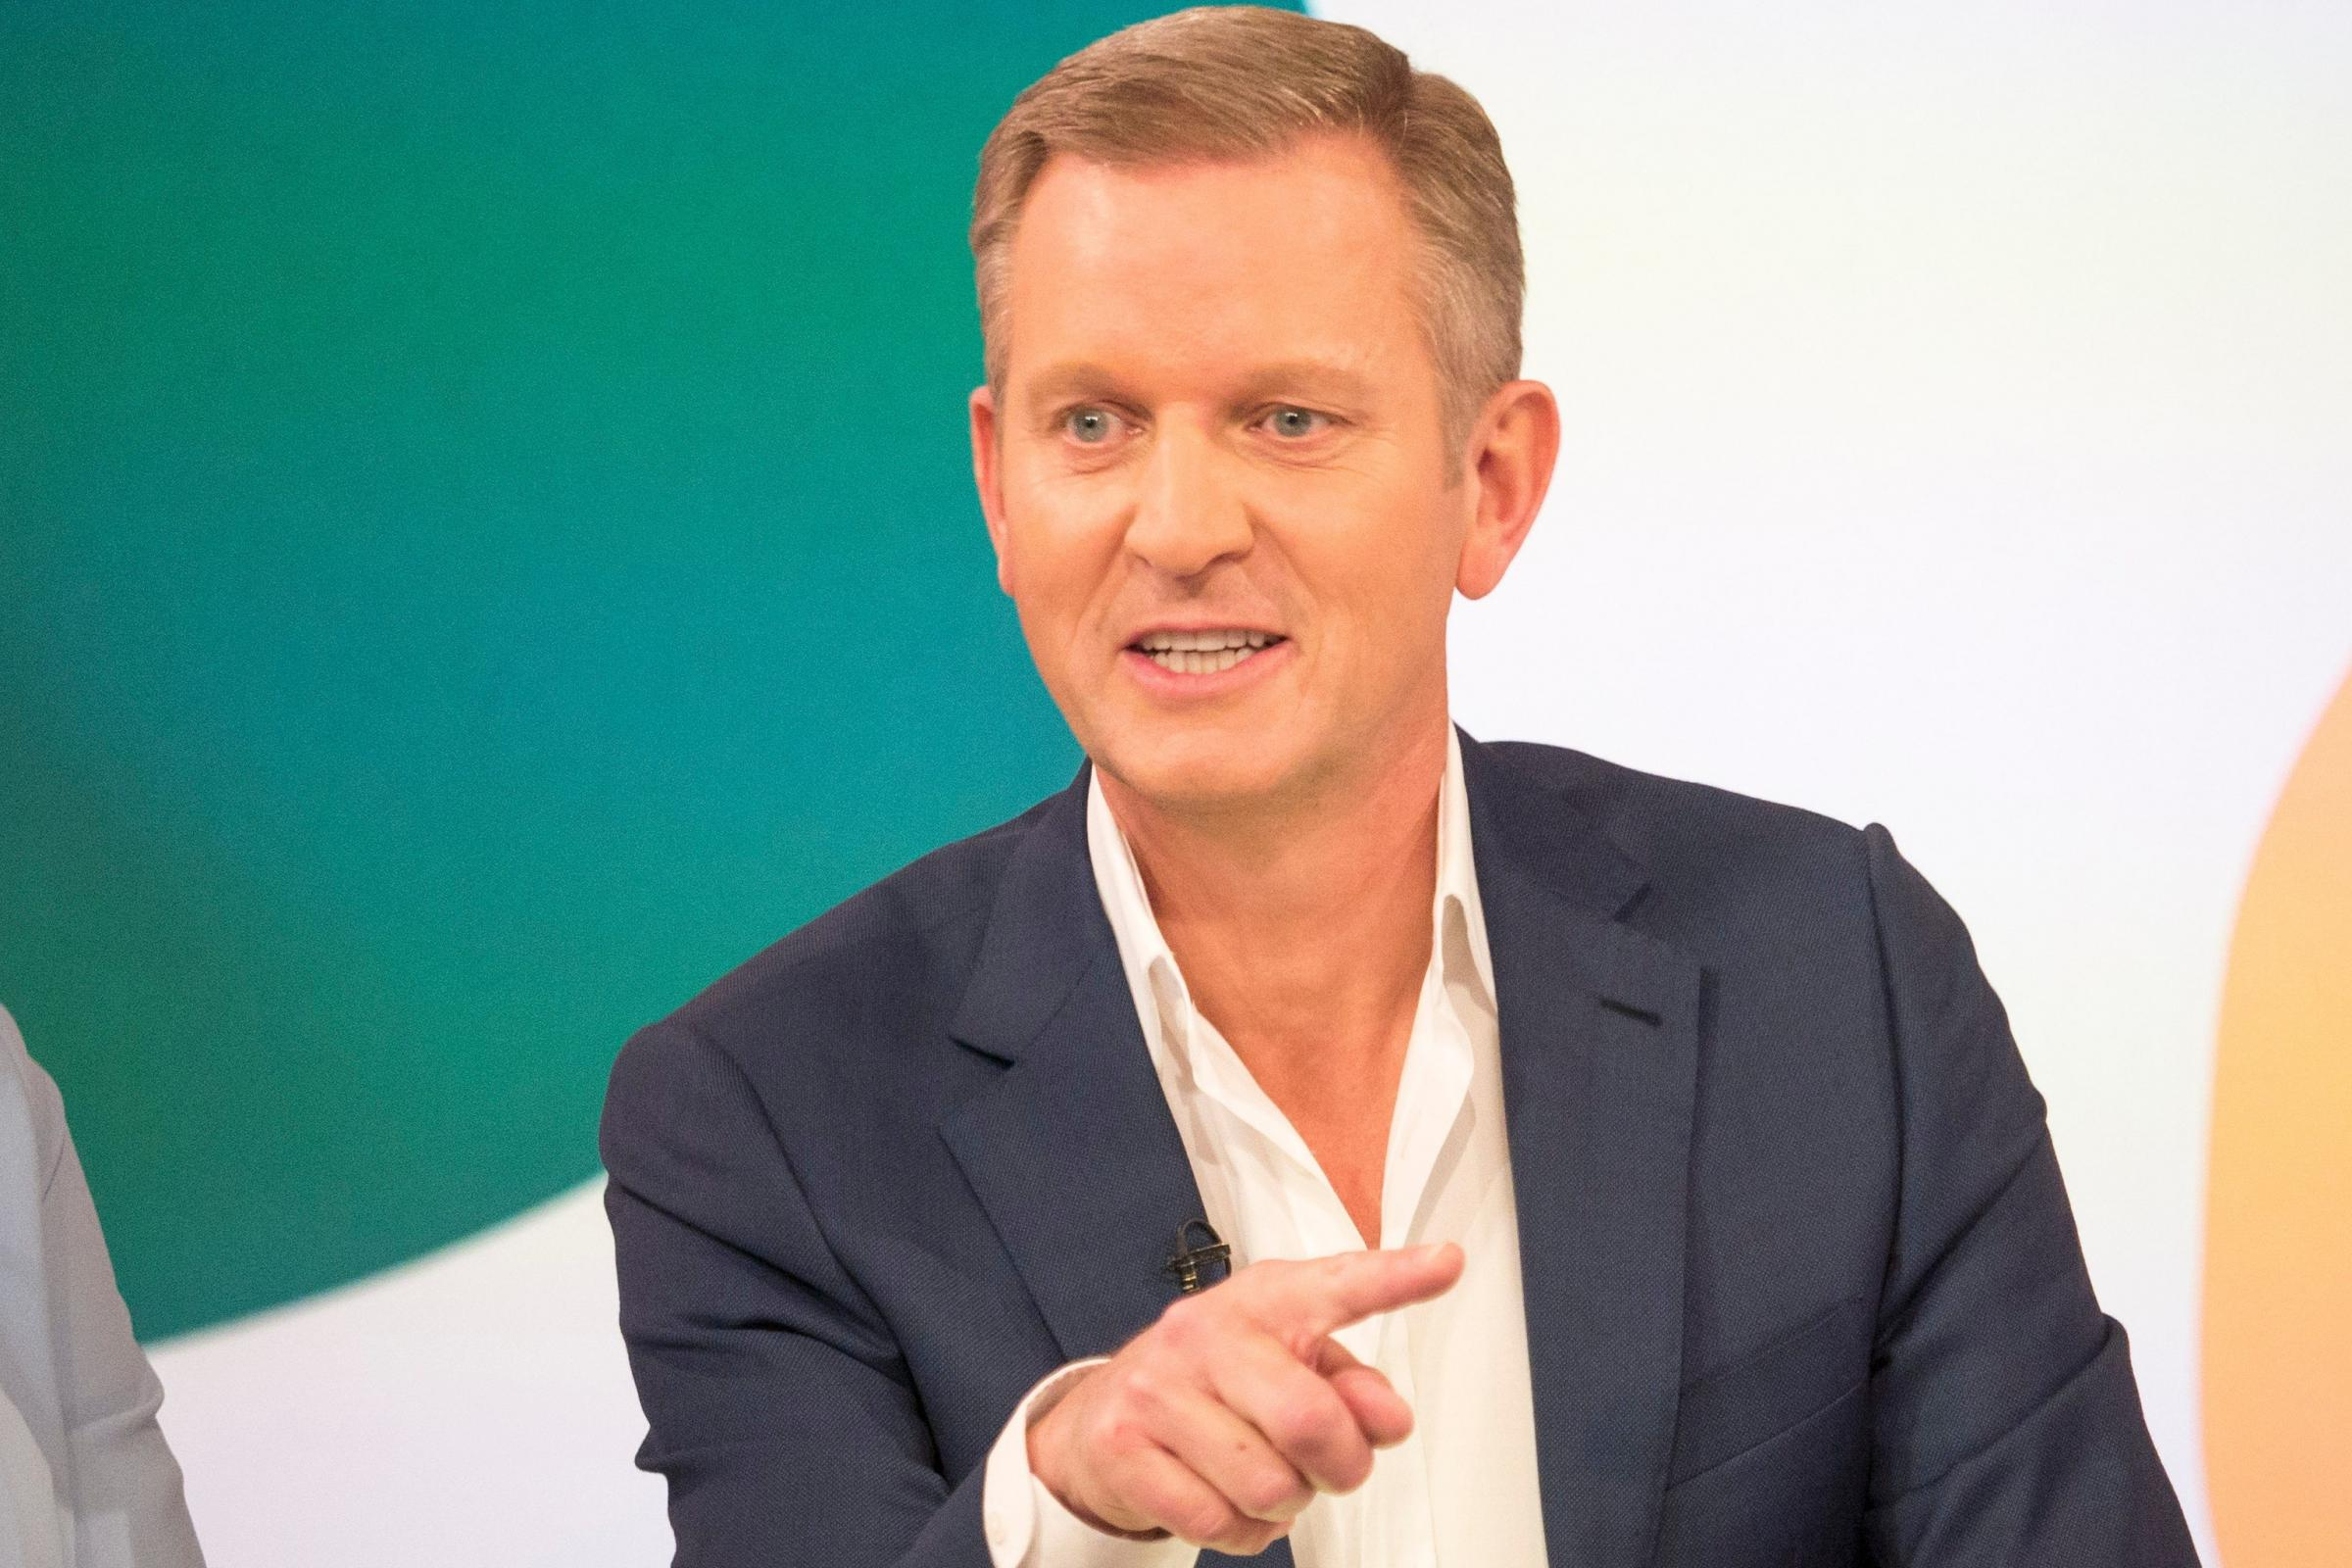 PR expert tells Jeremy Kyle to reinvent himself